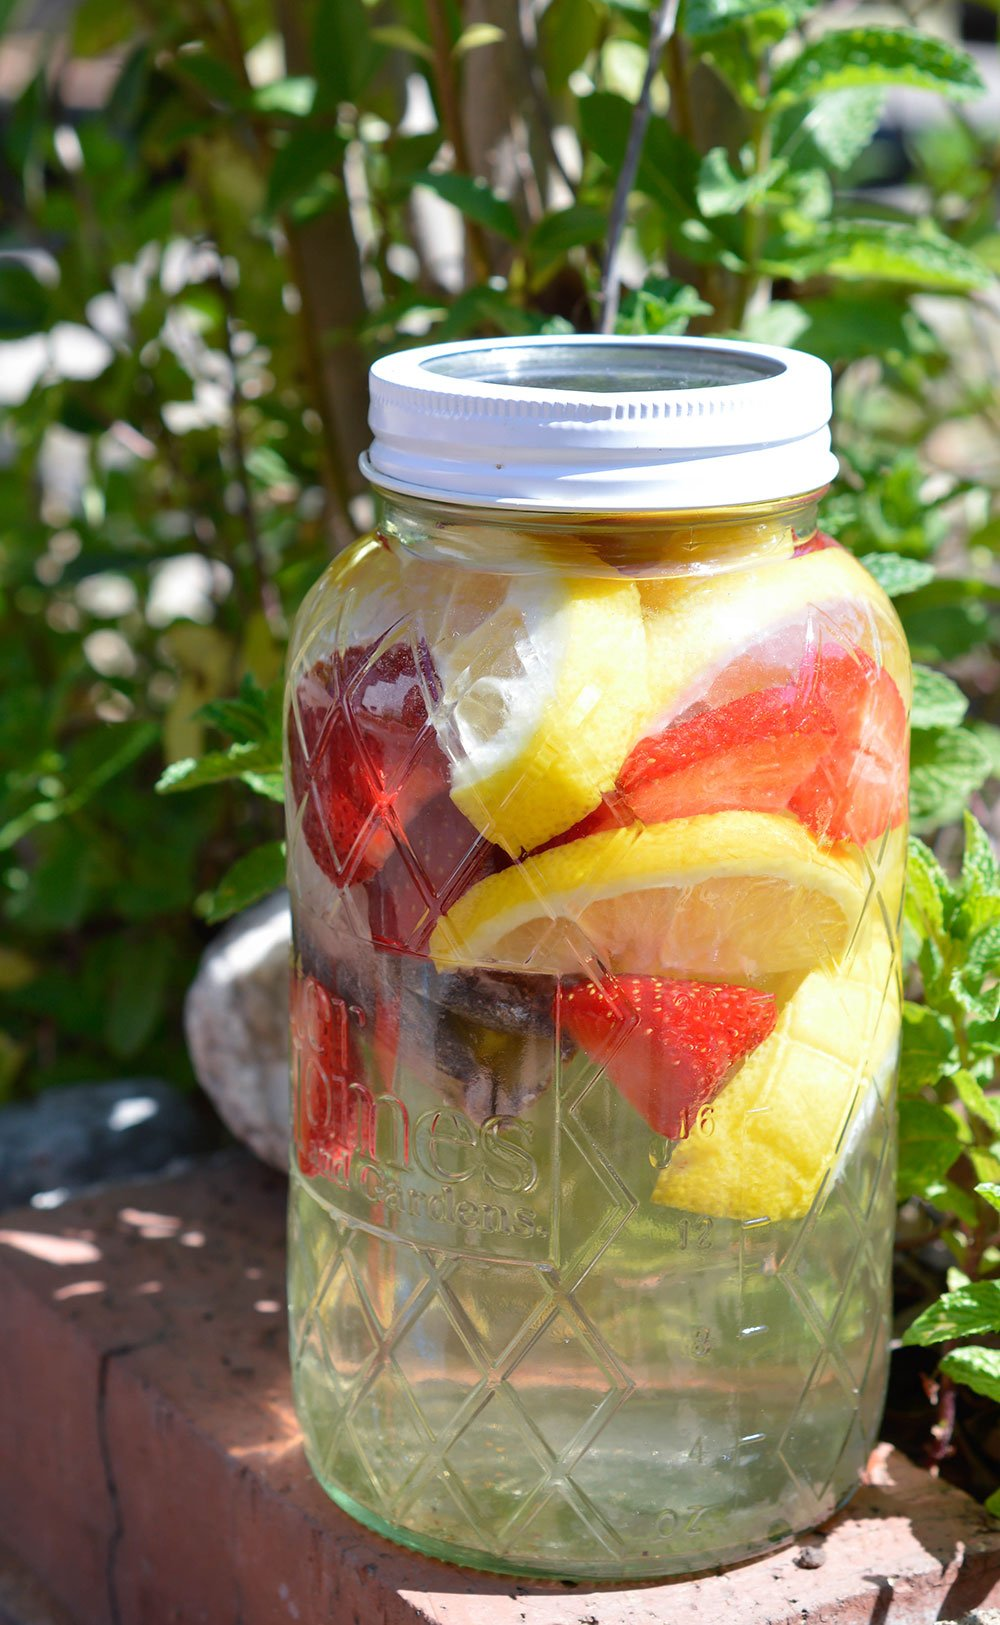 Strawberry Lemonade Sun Tea Recipe - This is the perfect summertime beverage. A naturally fruit flavored tea with no added sugar!